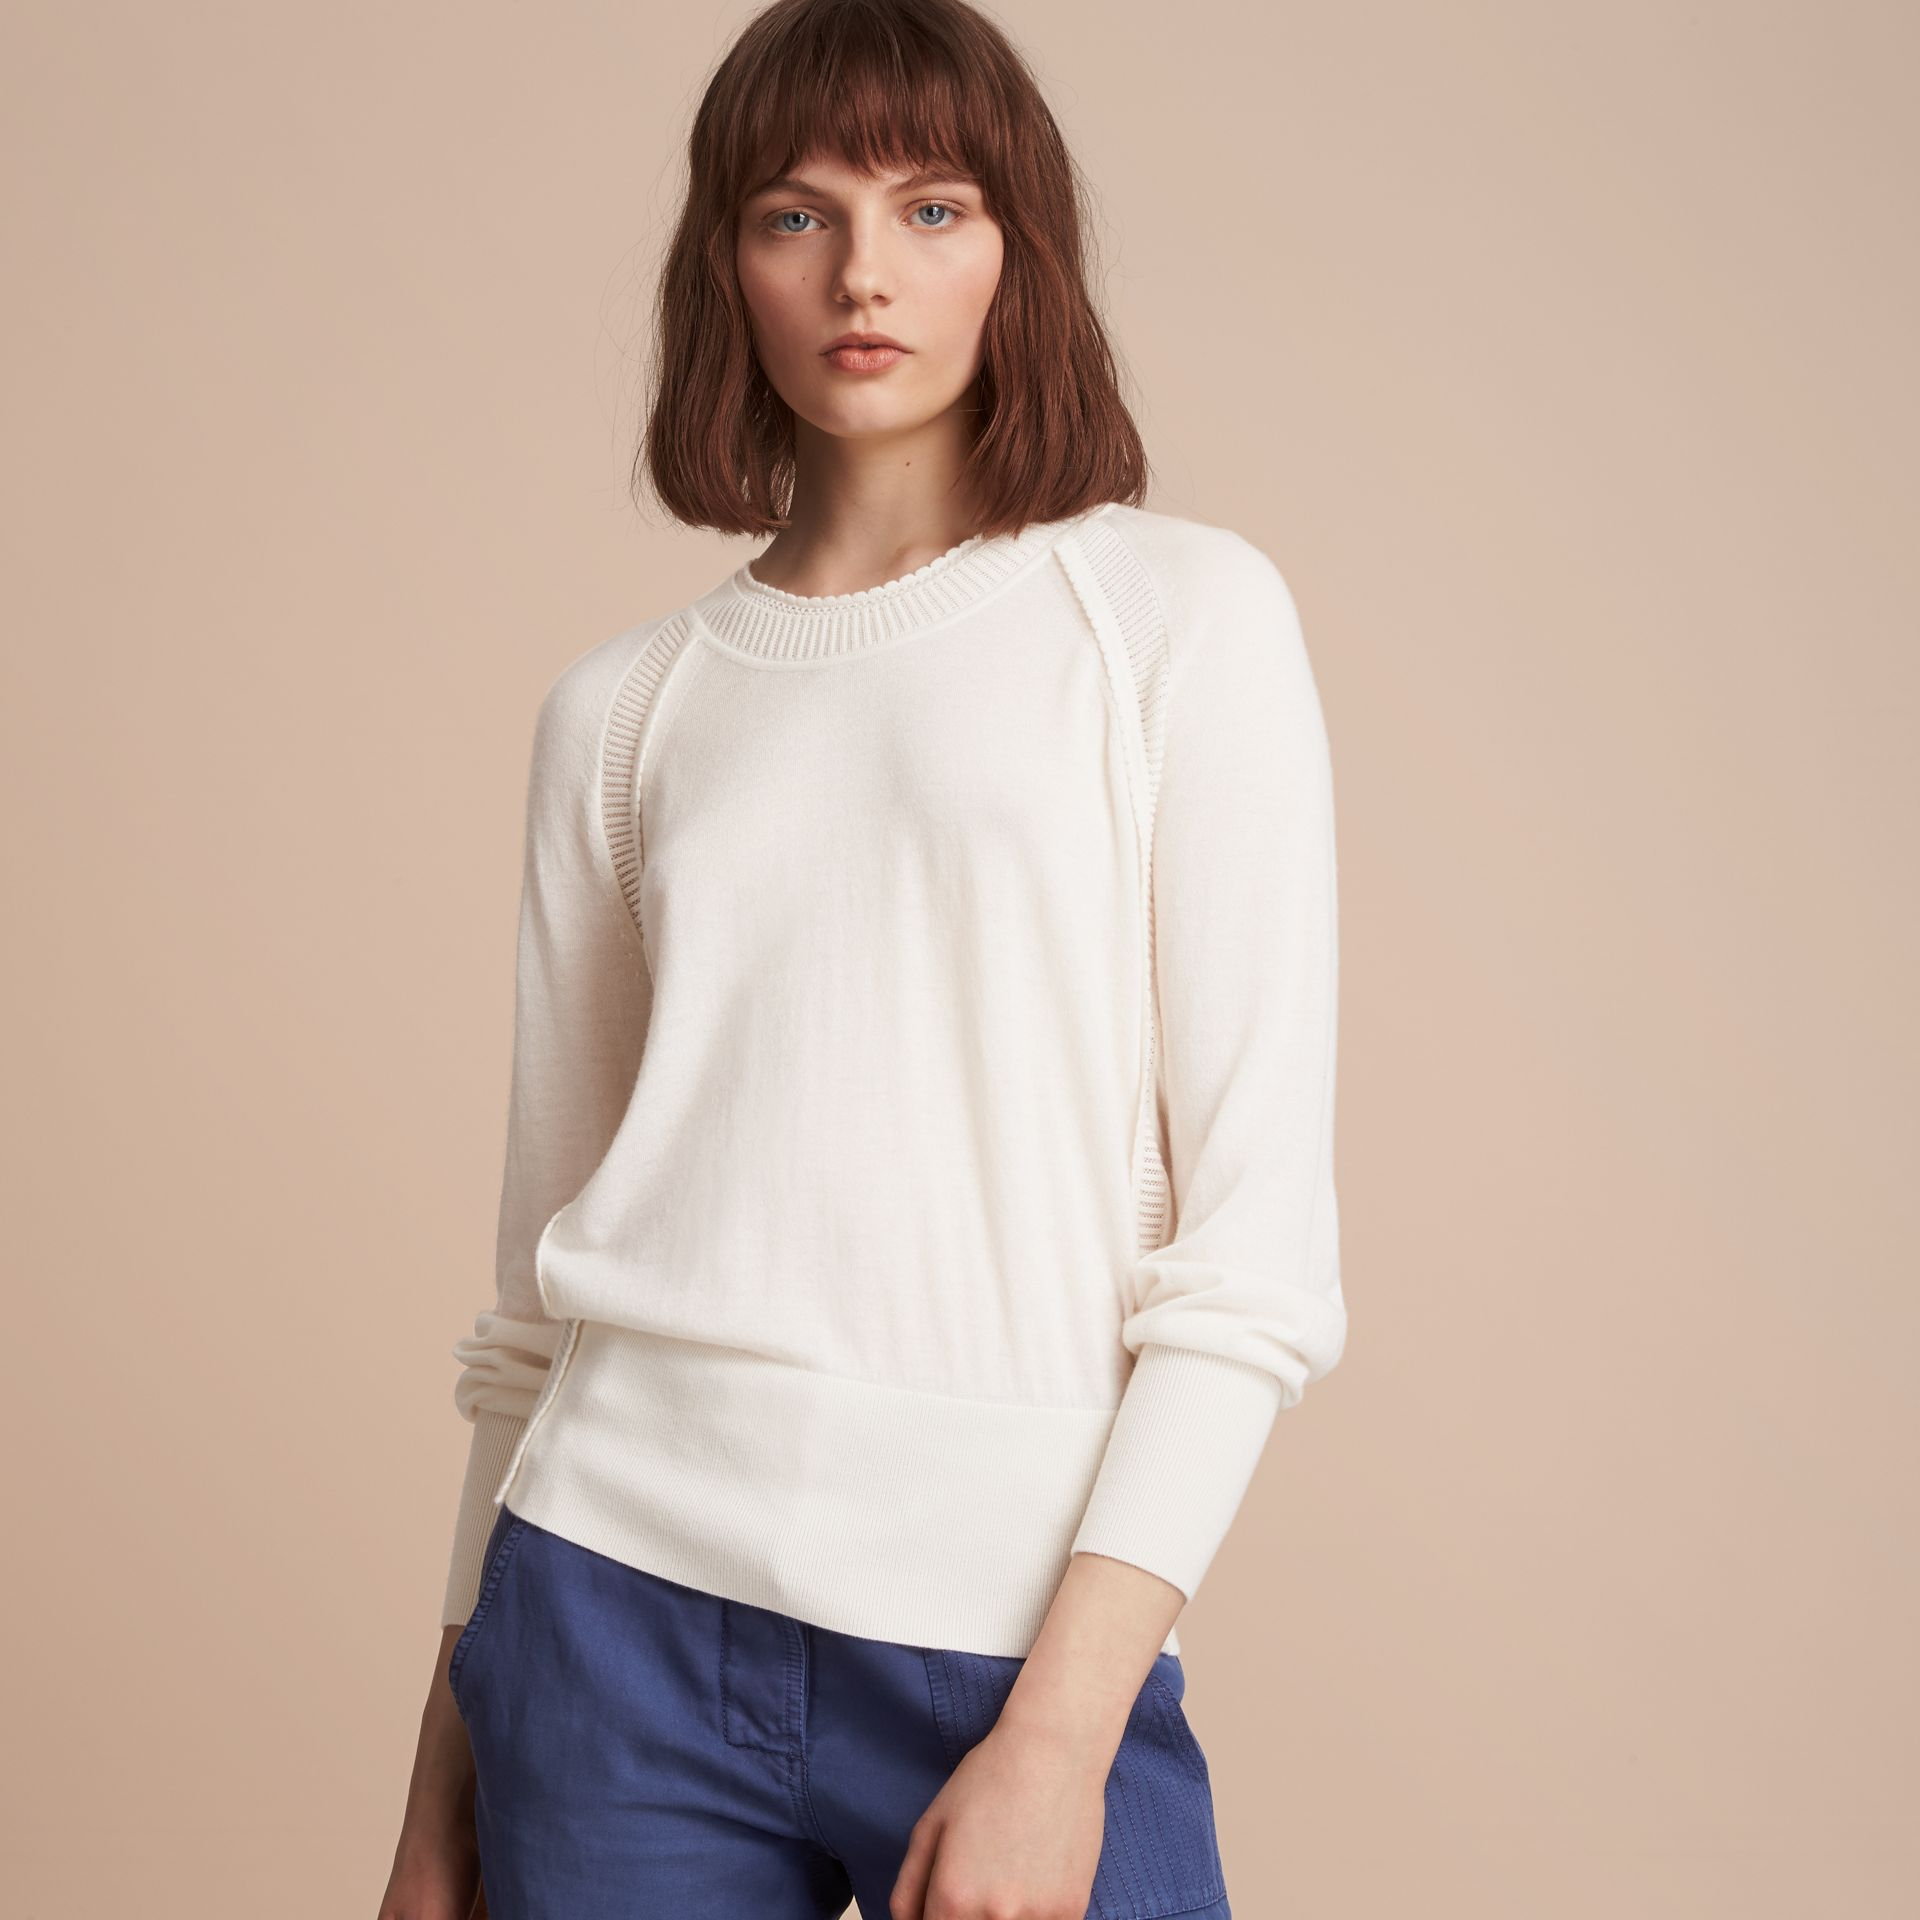 Open-knit Detail Cashmere Crew Neck Sweater Natural White - gallery image 6